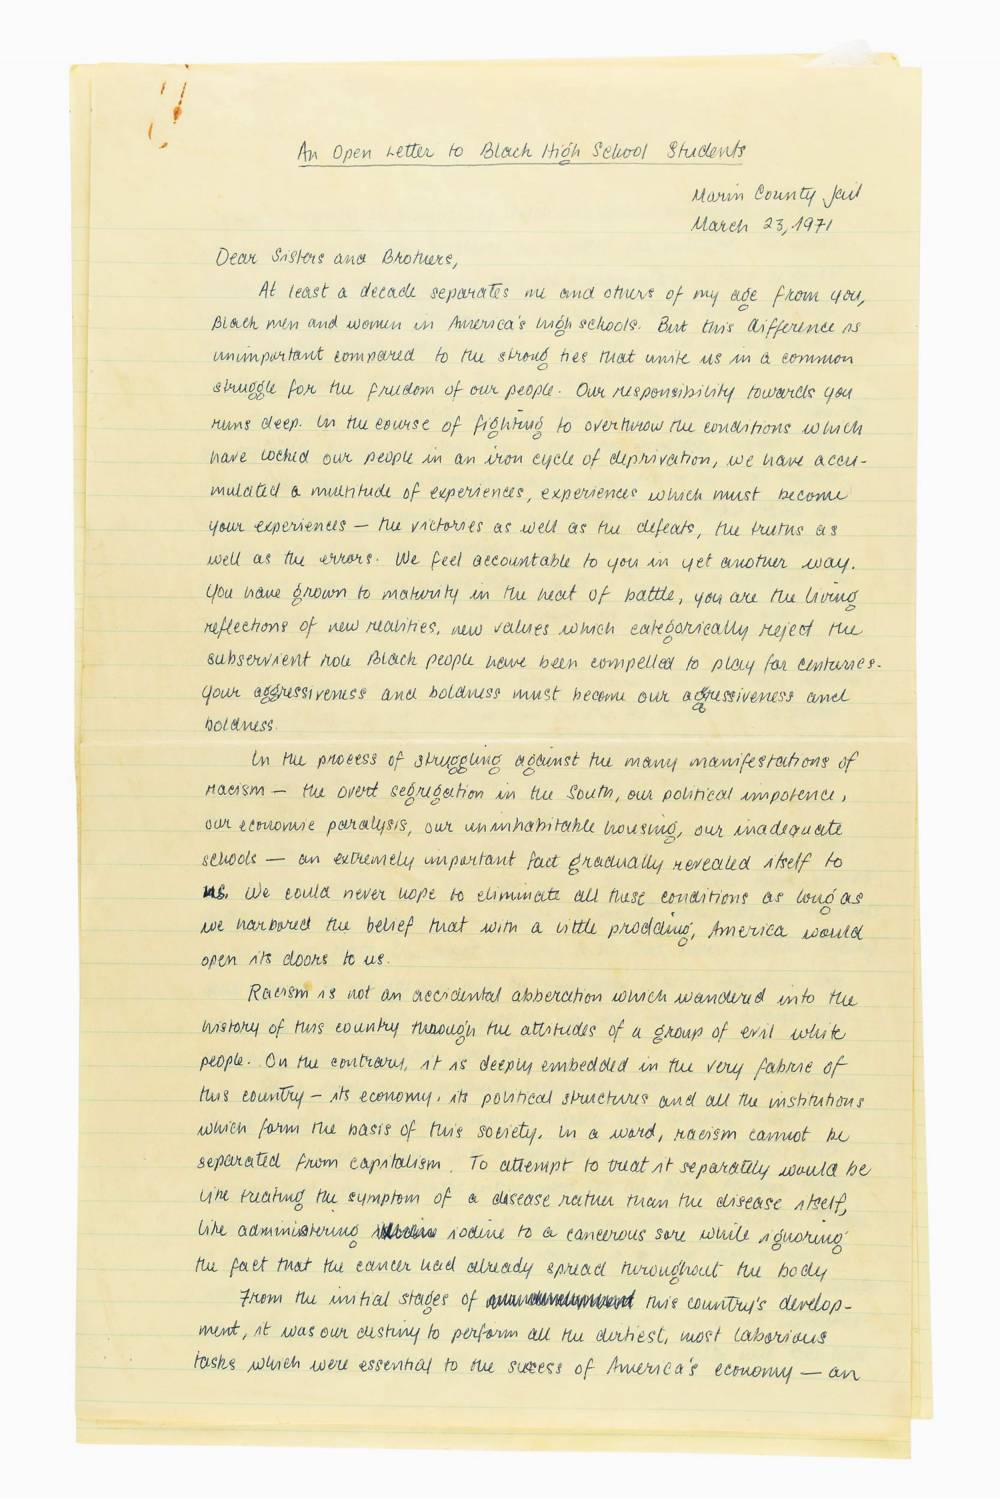 A handwritten letter on yellowed, lined paper.